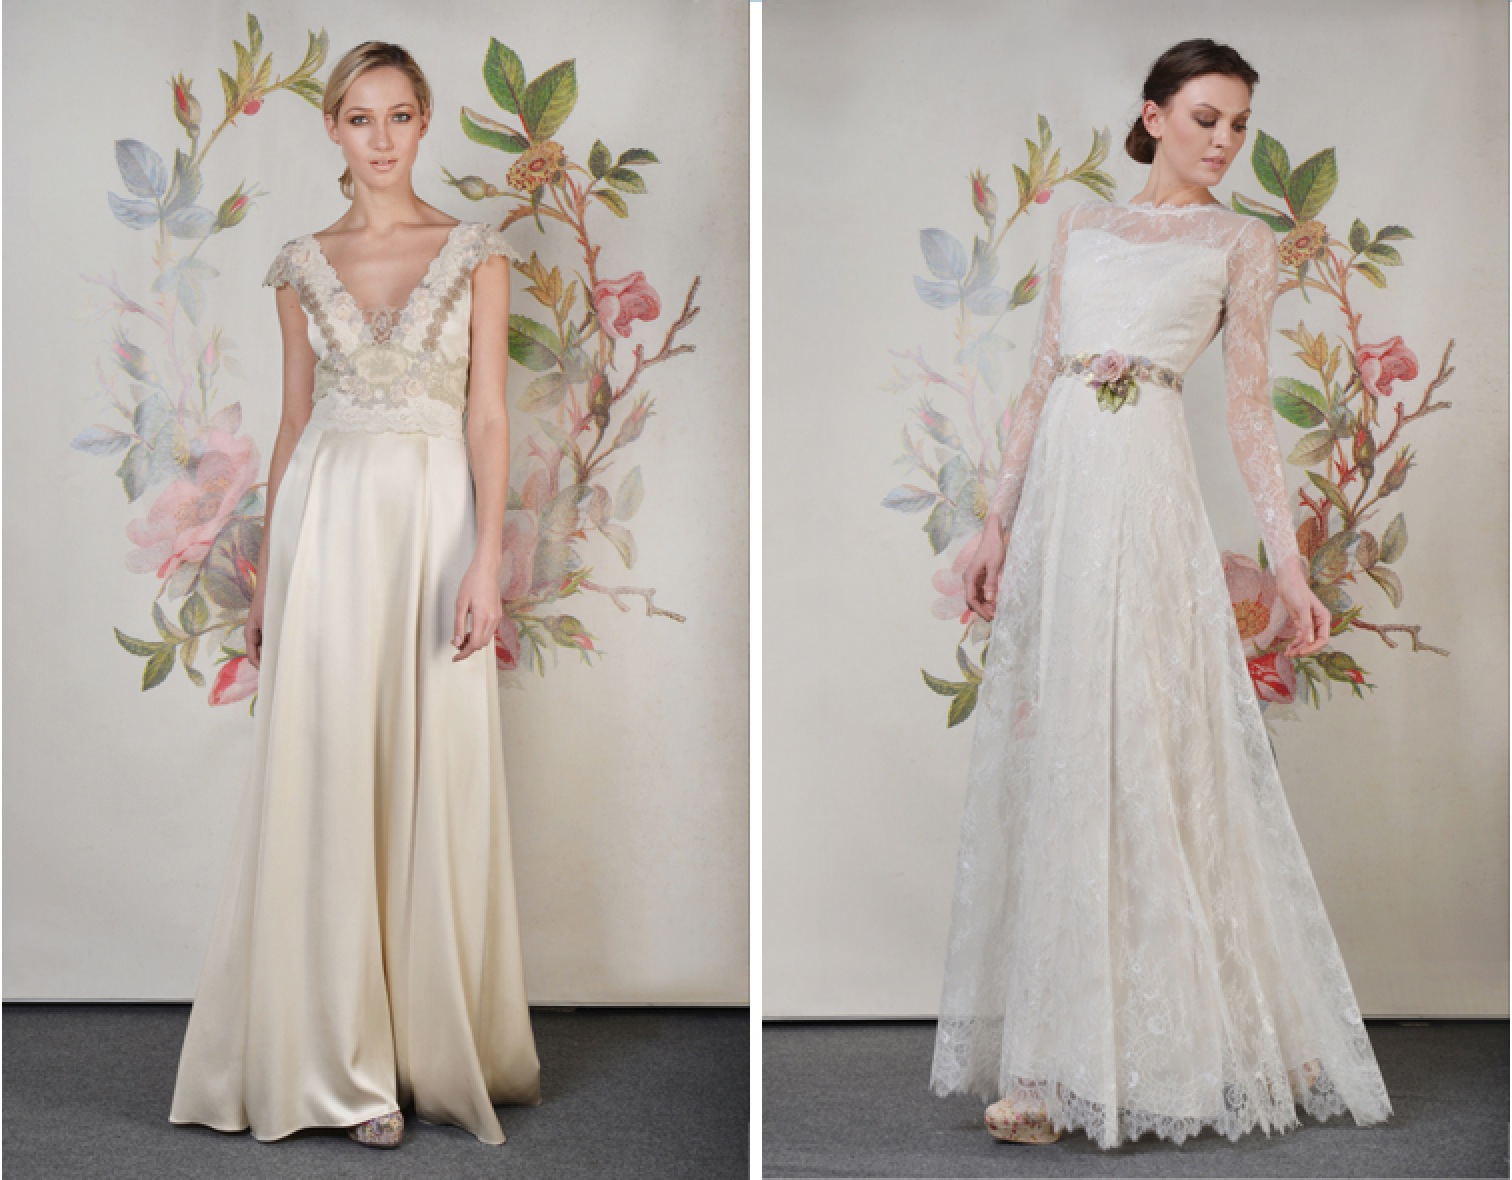 Wedding Dresses, Romantic Wedding Dresses, Vintage Wedding Dresses, Fashion, Claire pettibone